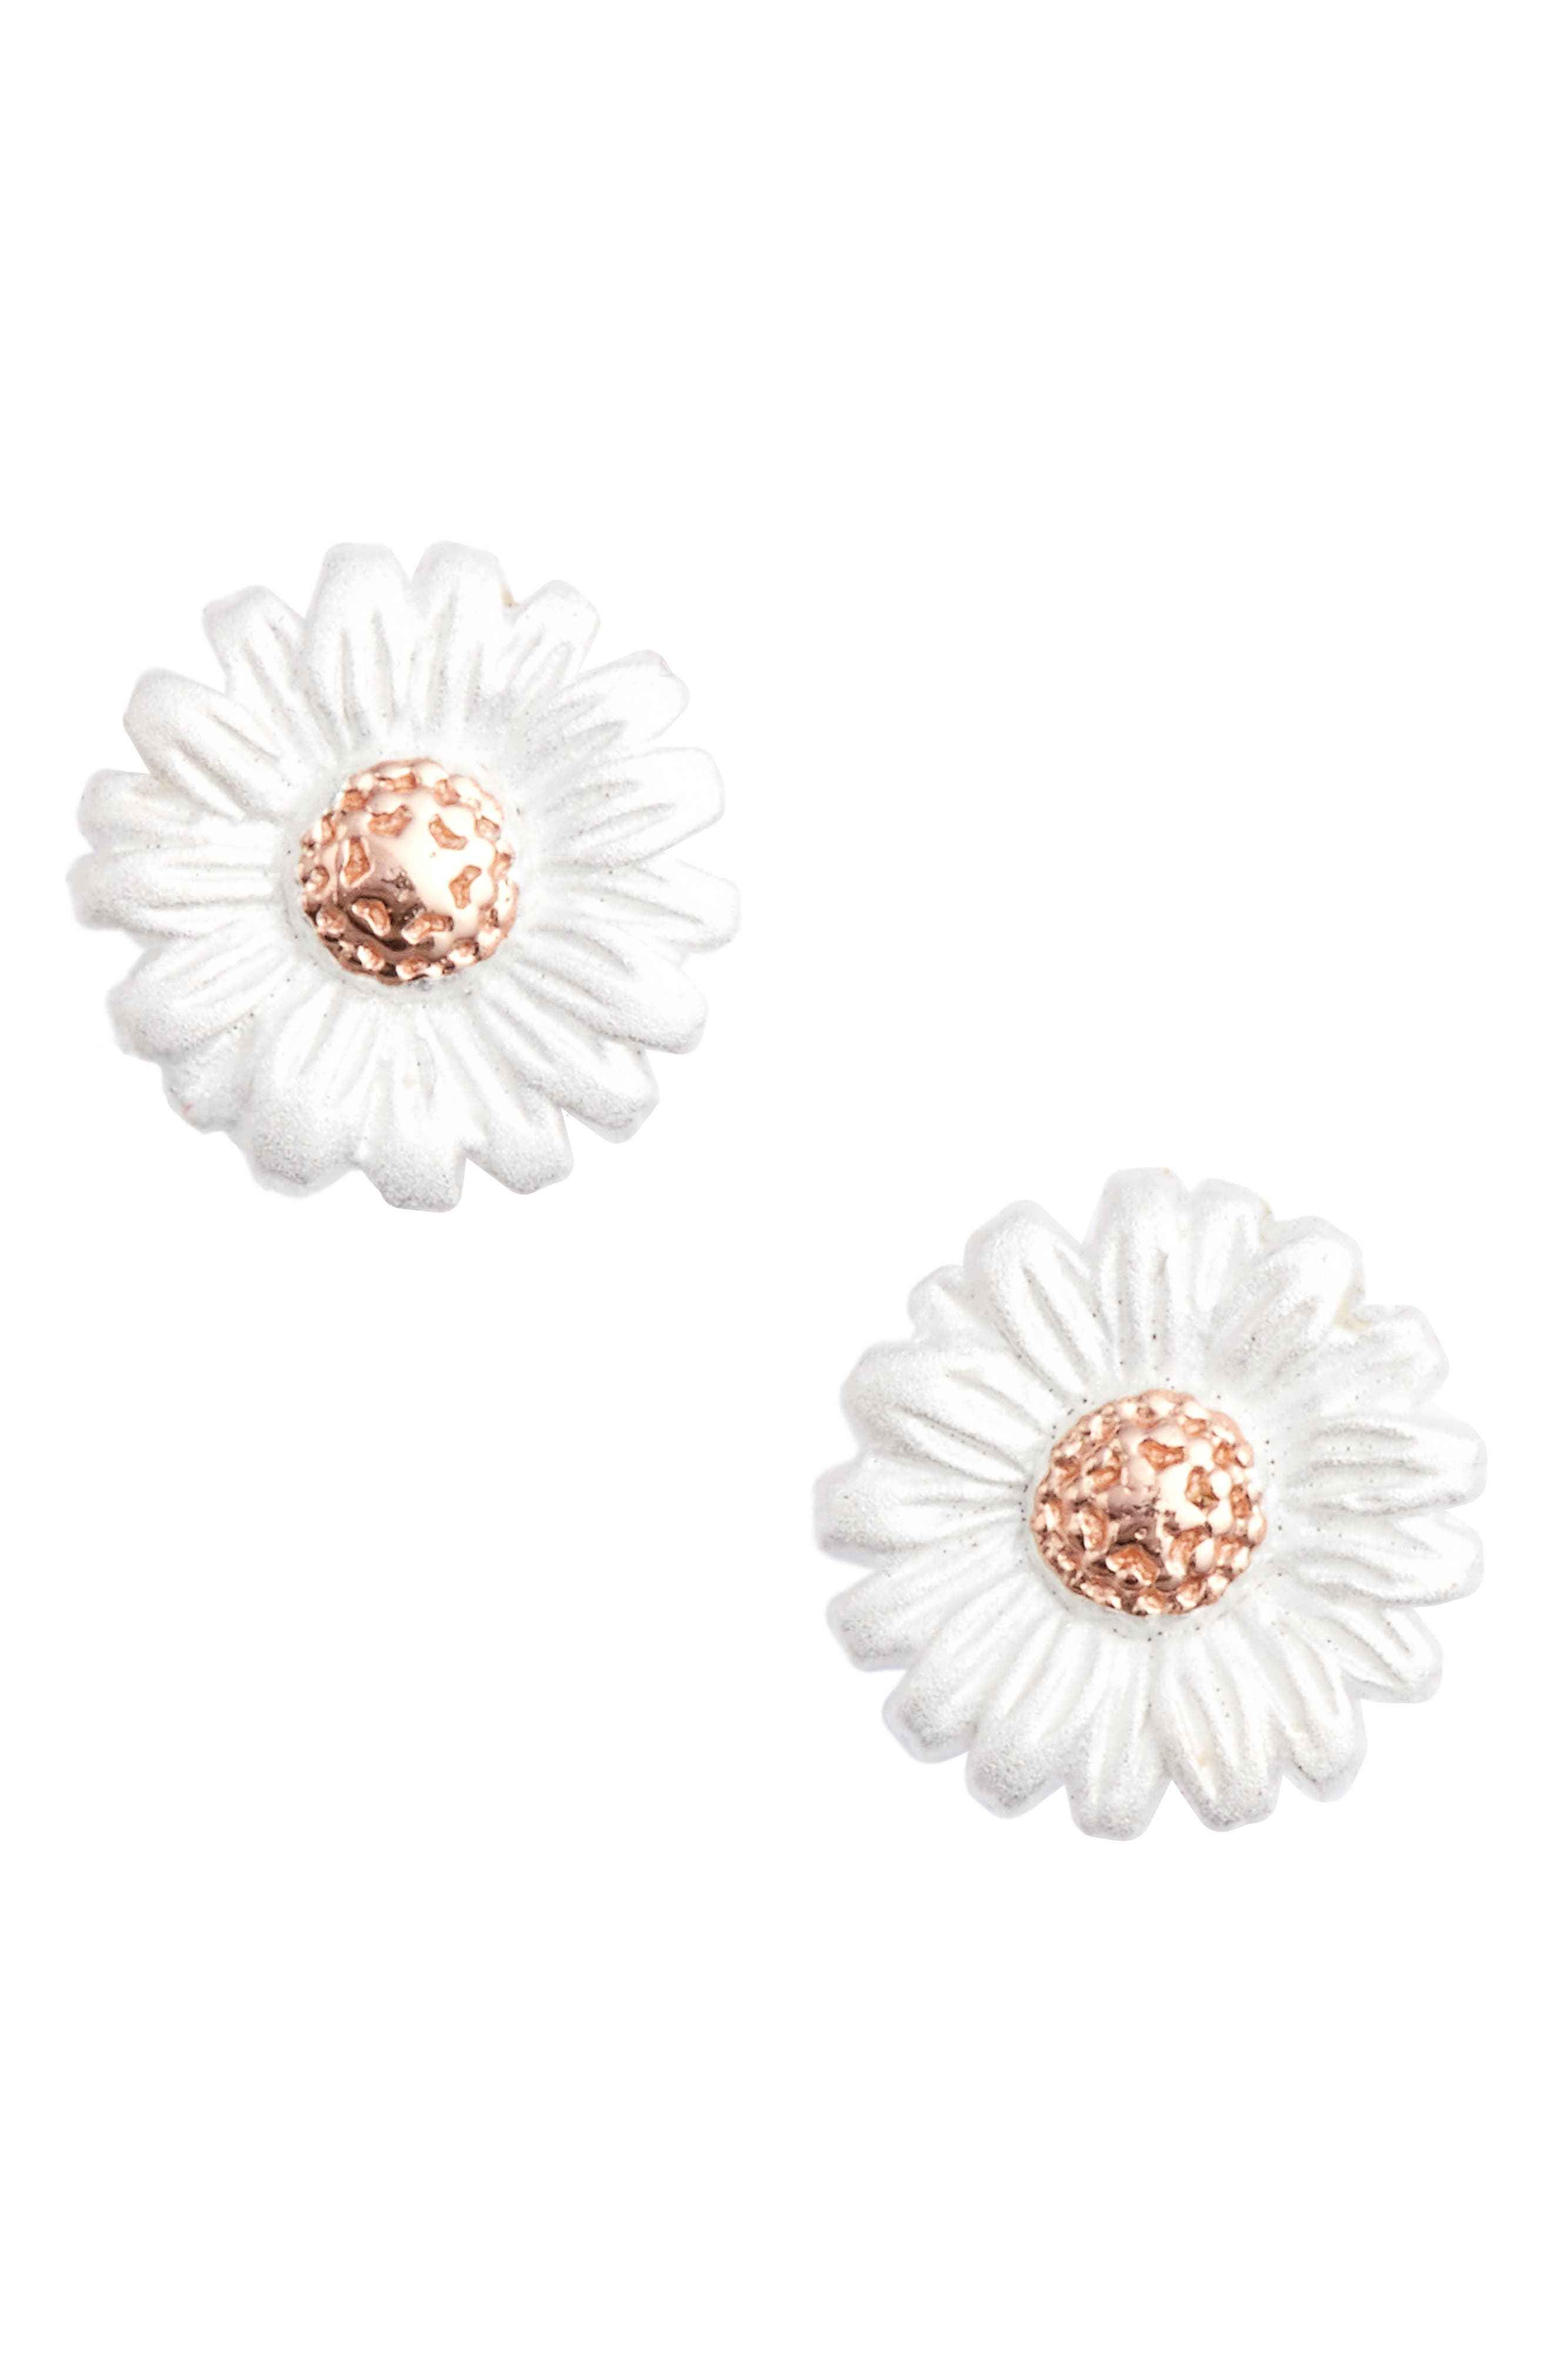 Daisy Stud Earrings,                             Main thumbnail 1, color,                             Silver/ Rose Gold